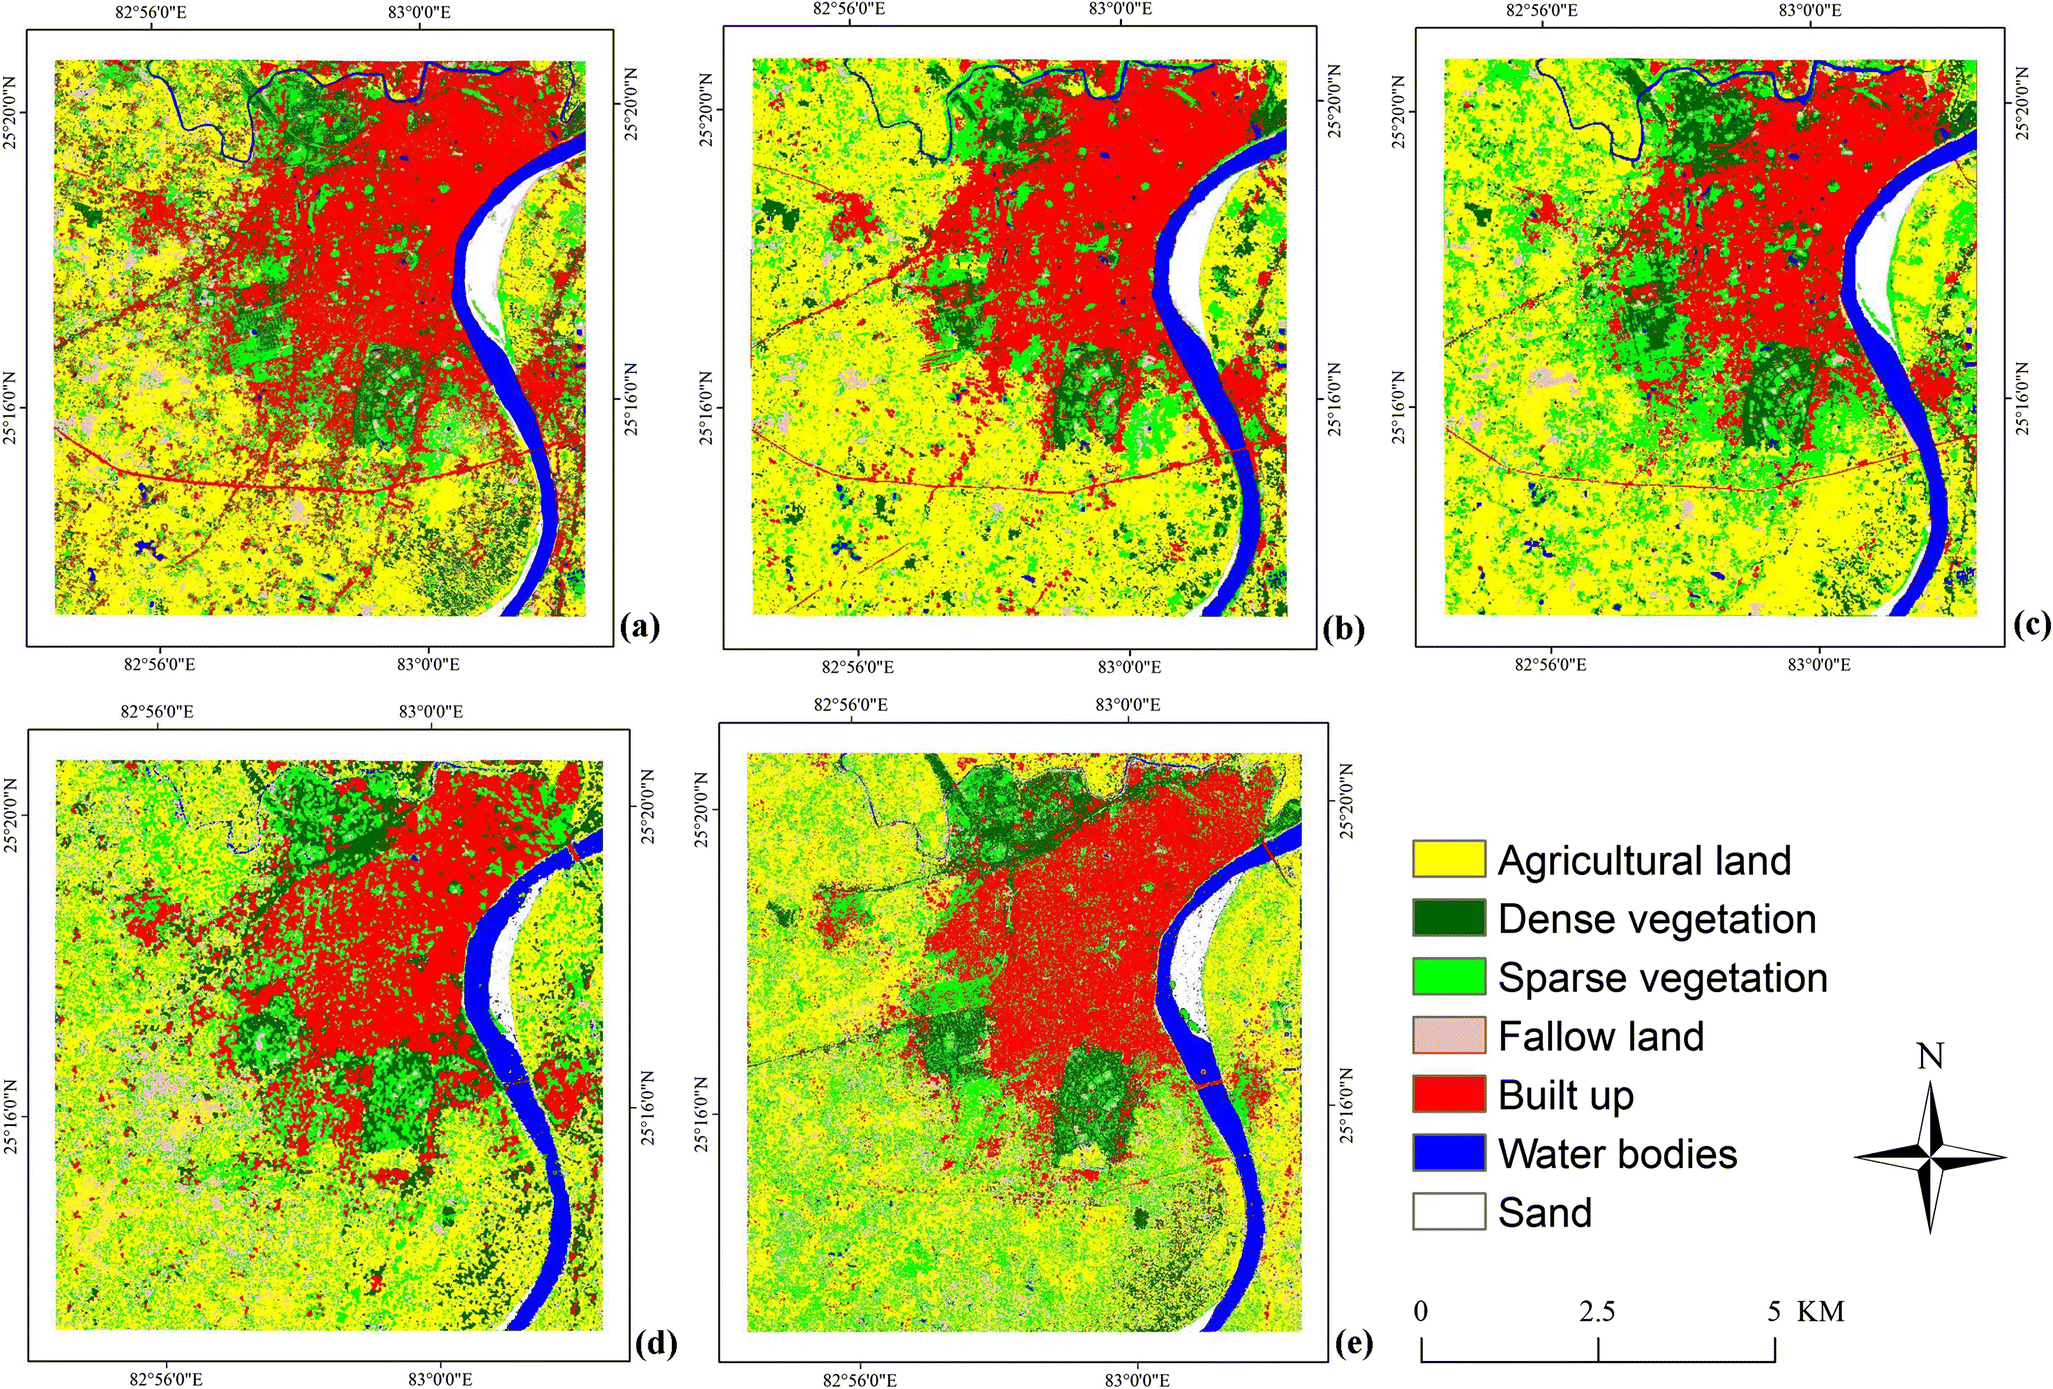 Performance evaluation of textural features in improving land use